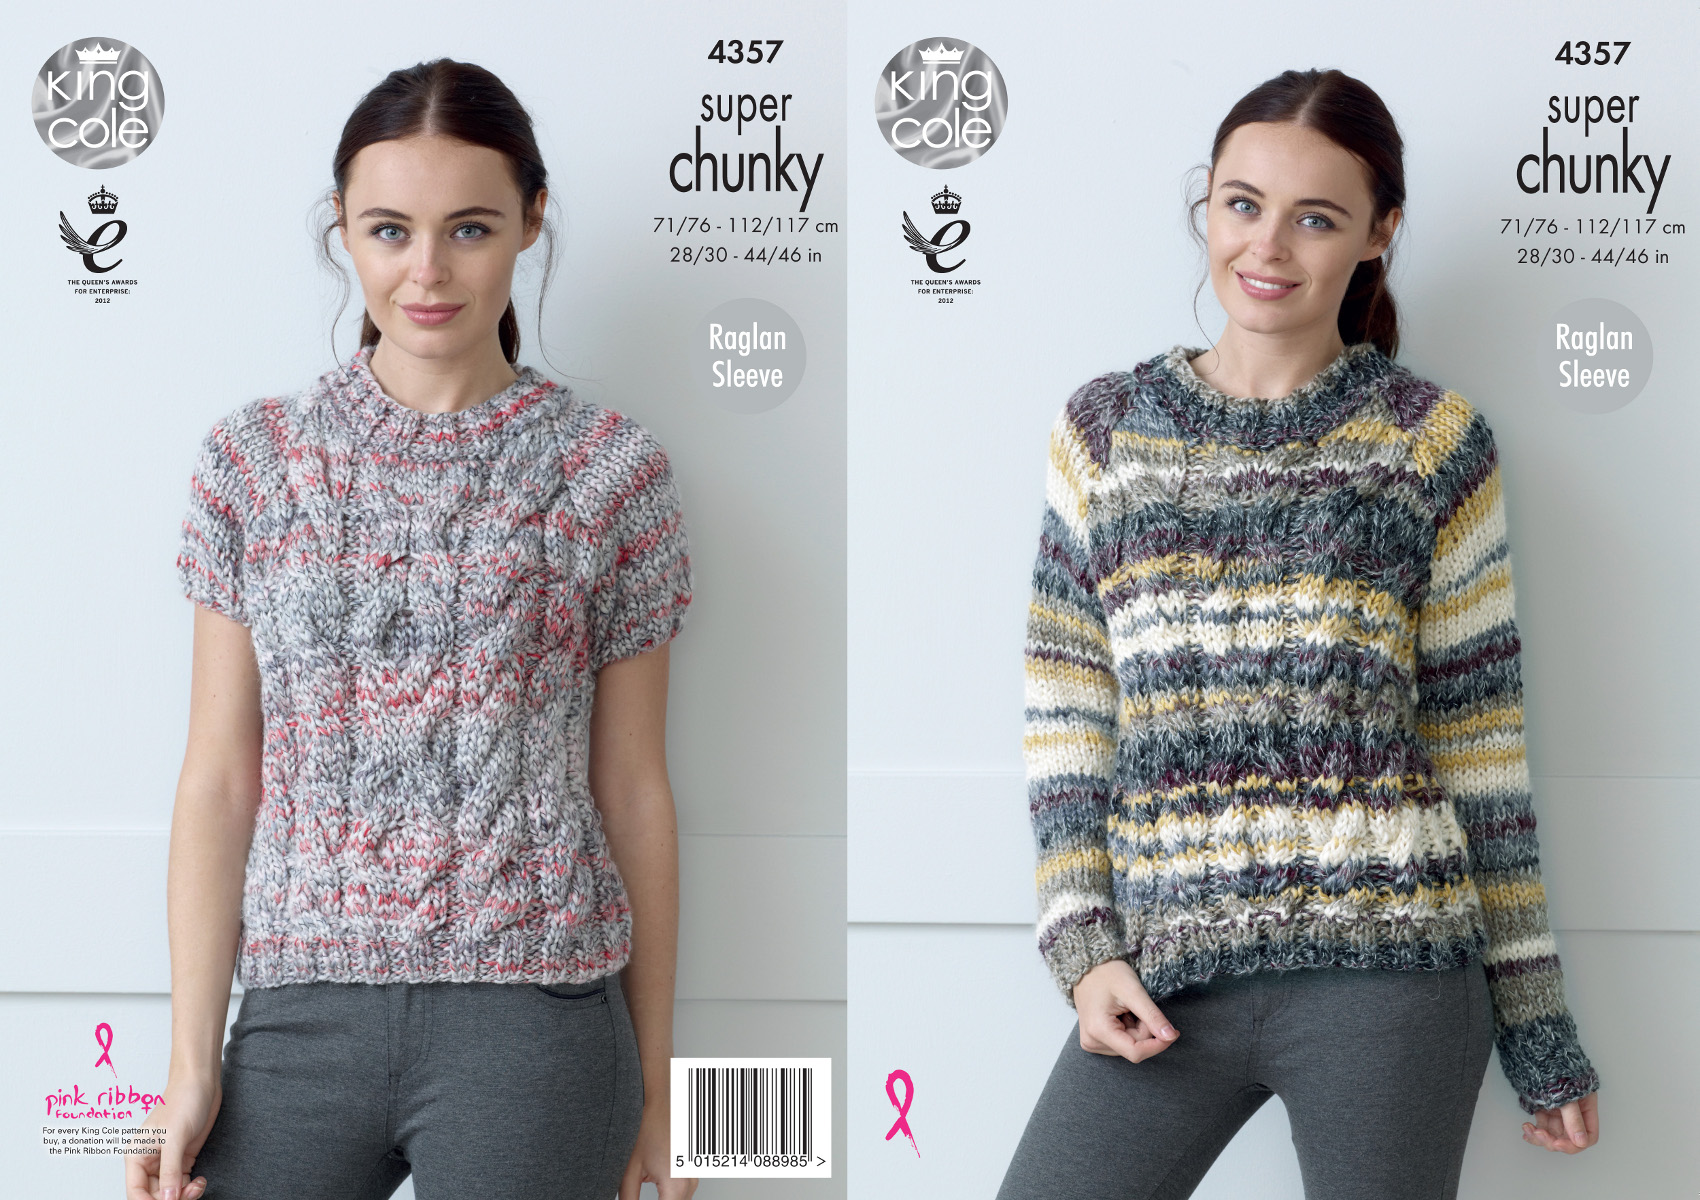 King Cole Ladies Super Chunky Knitting Pattern Cabled Raglan ...